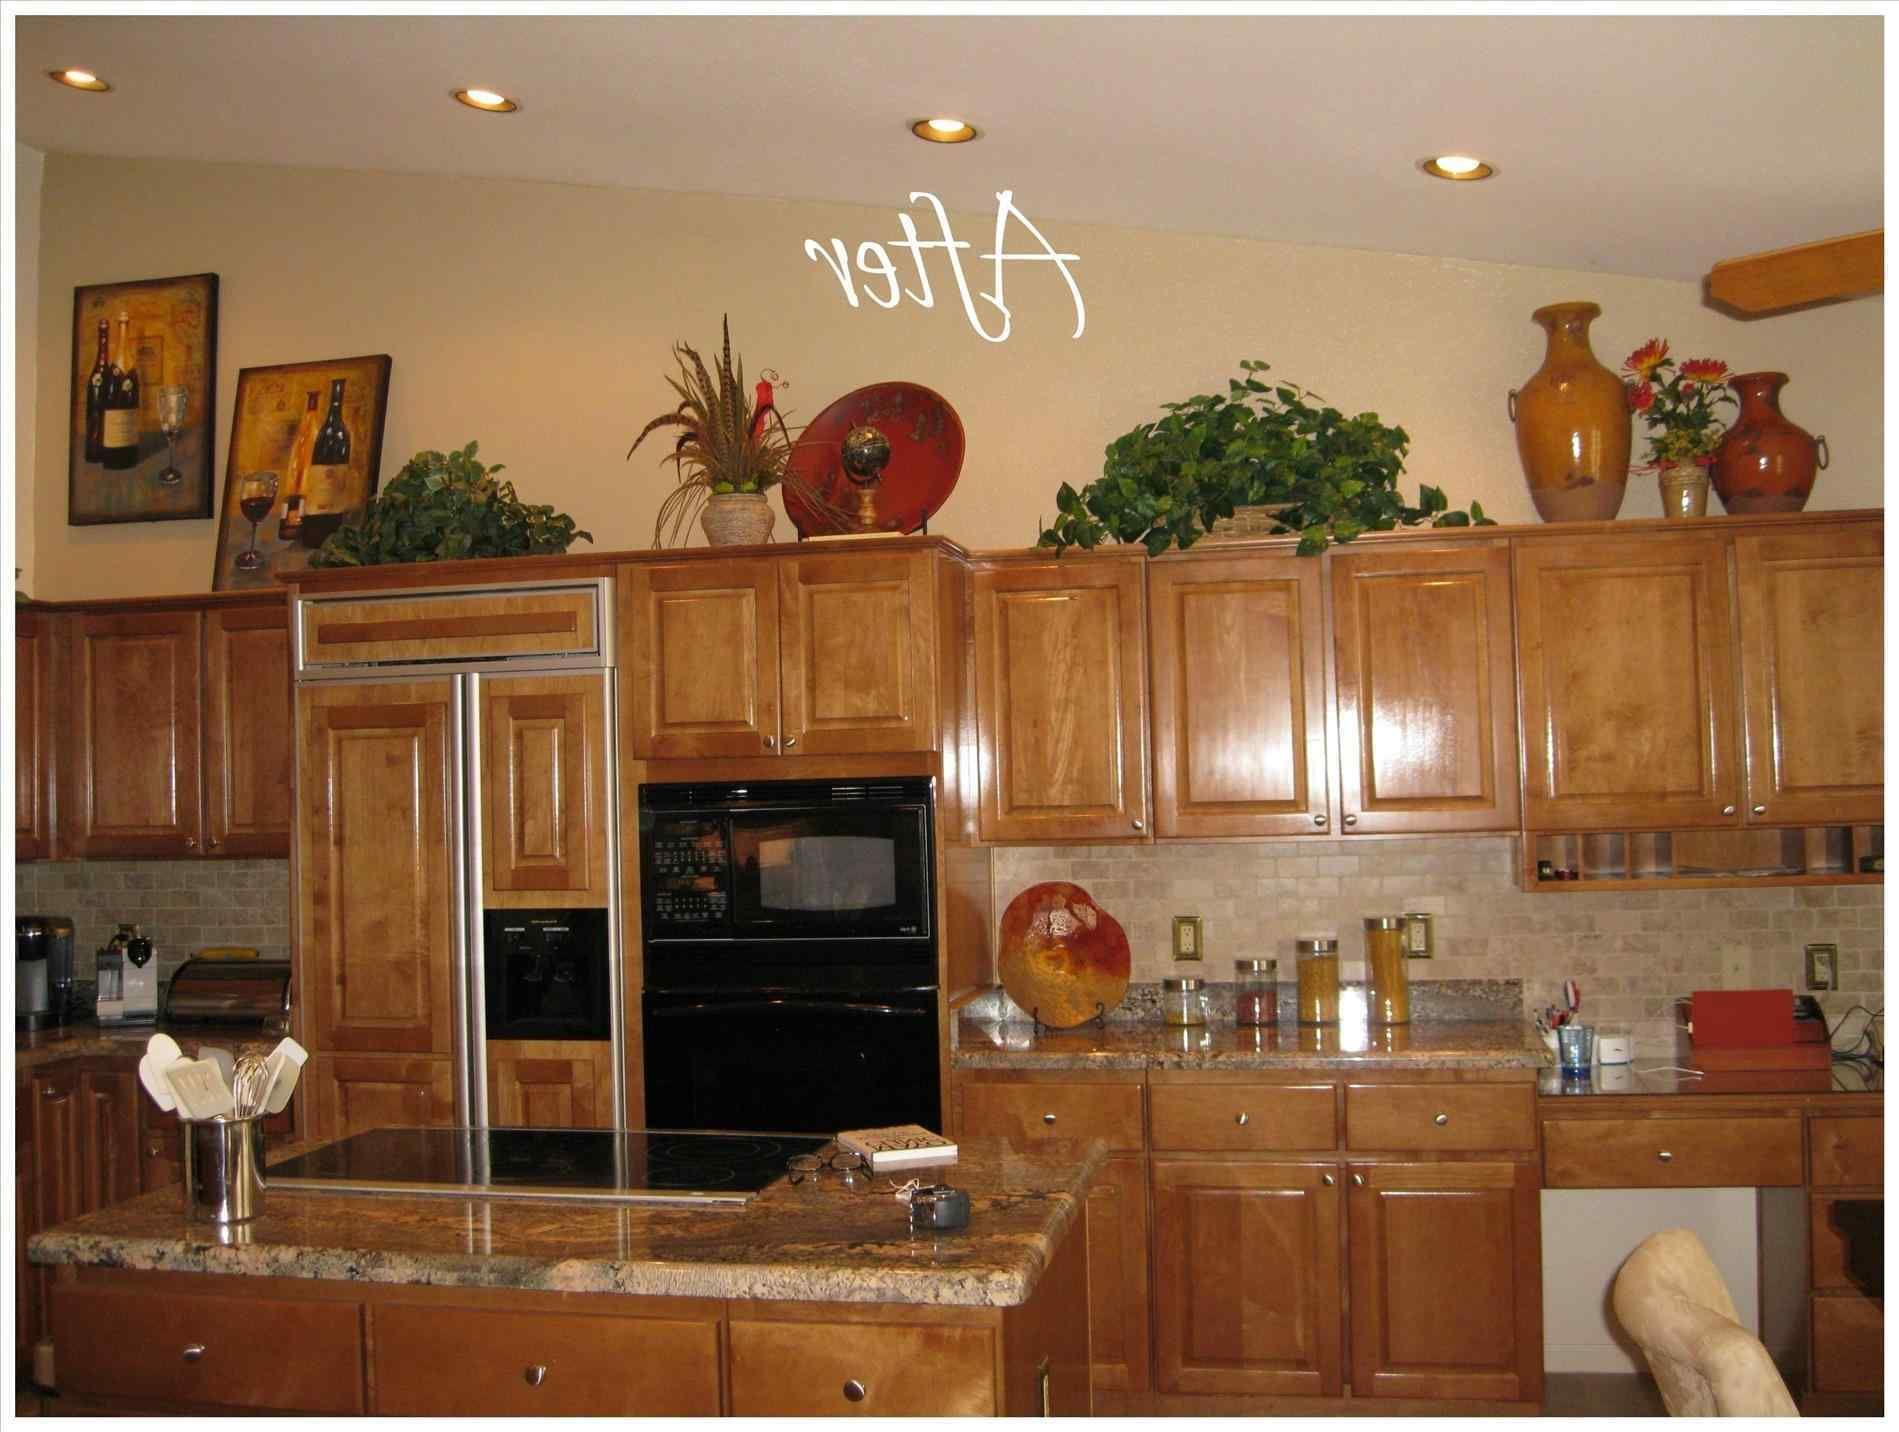 How To Decorate Top Of Kitchen Cabinets Pinterest Google Search Above Kitchen Cabinets Top Kitchen Cabinets Decor Decorating Above Kitchen Cabinets